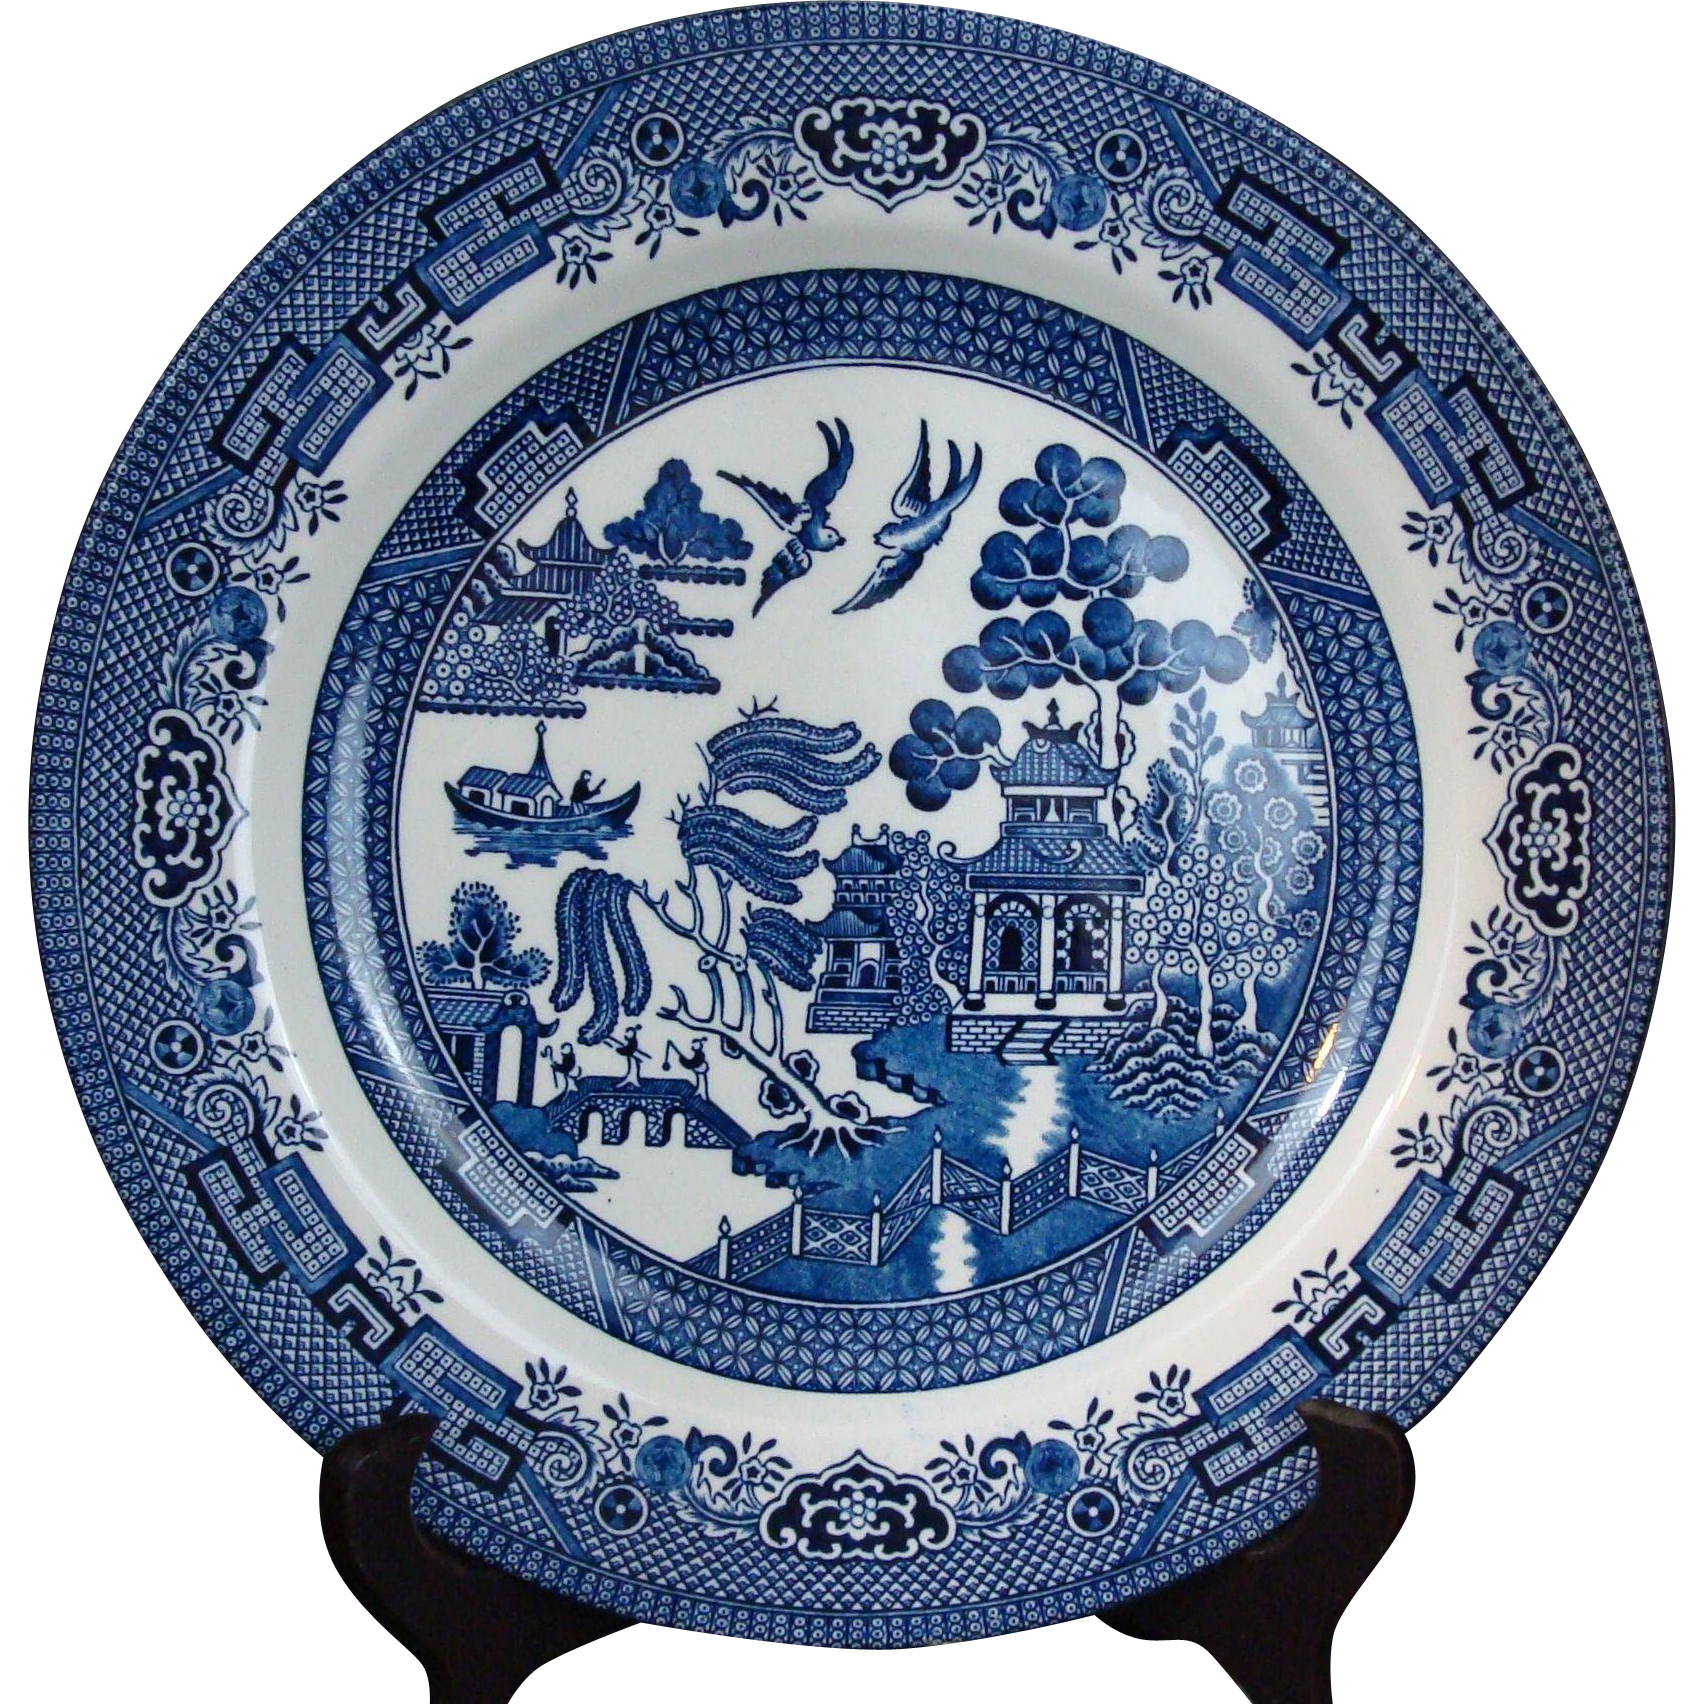 (1) One Dinner PLATE Blue Willow by Churchill England  sc 1 st  Pinterest & 1) One Dinner PLATE Blue Willow by Churchill England | Pottery ...